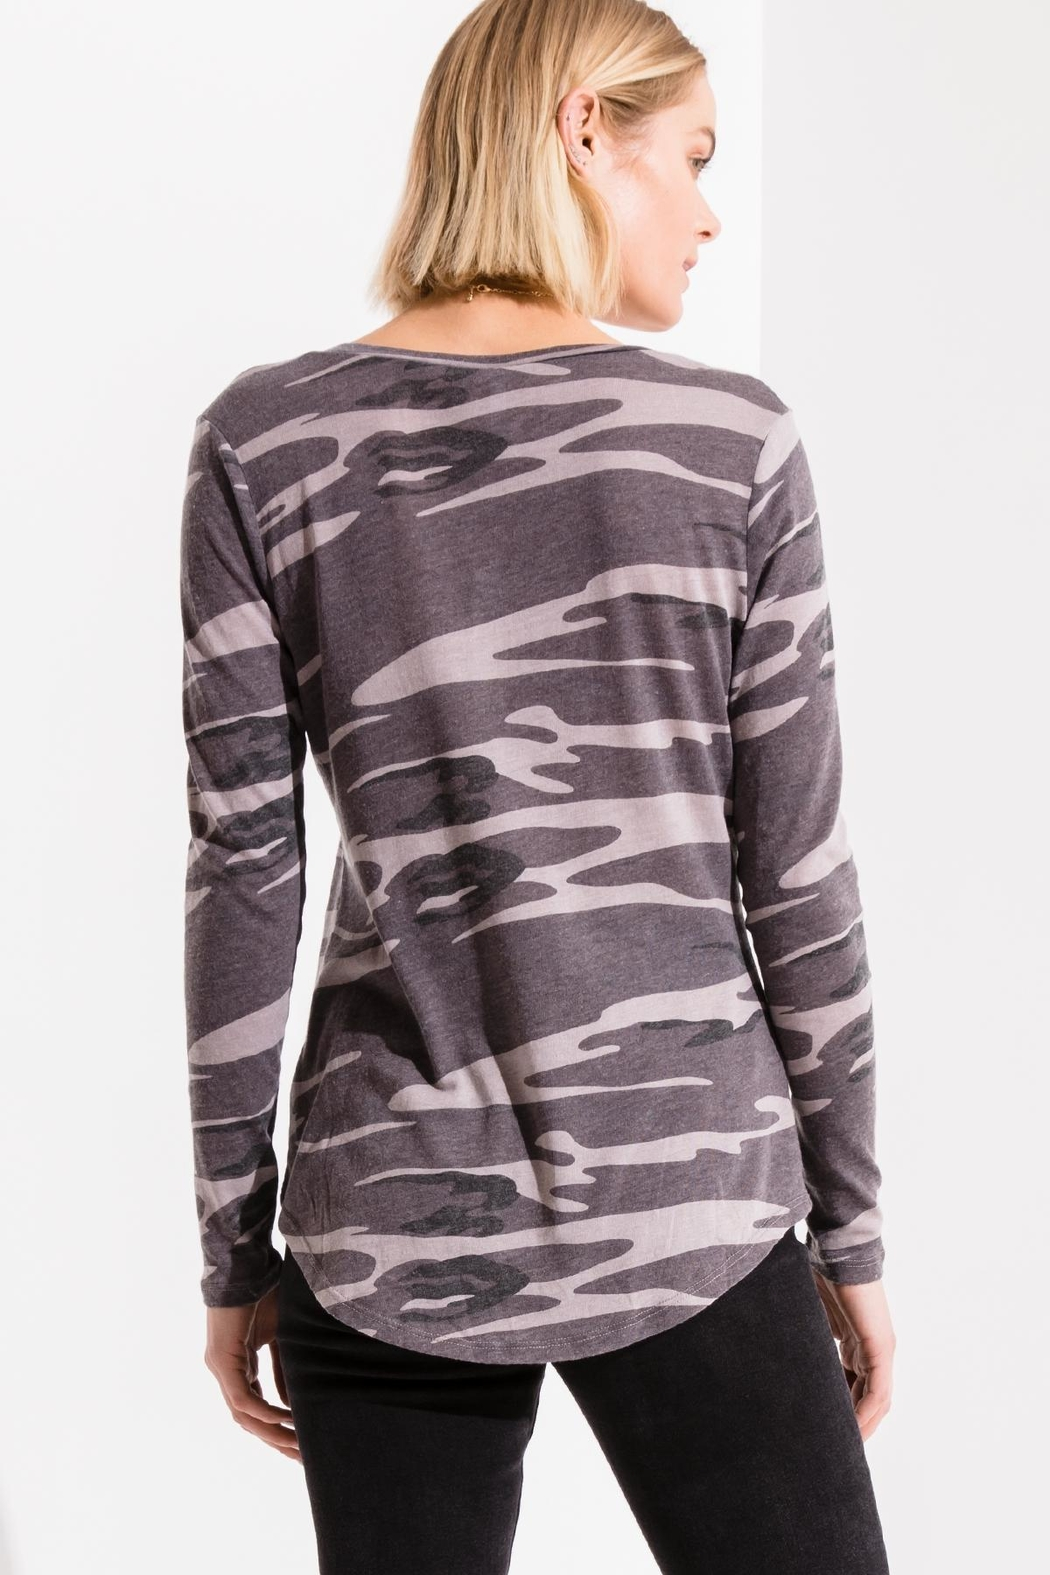 z supply Camo L/s Tee - Side Cropped Image